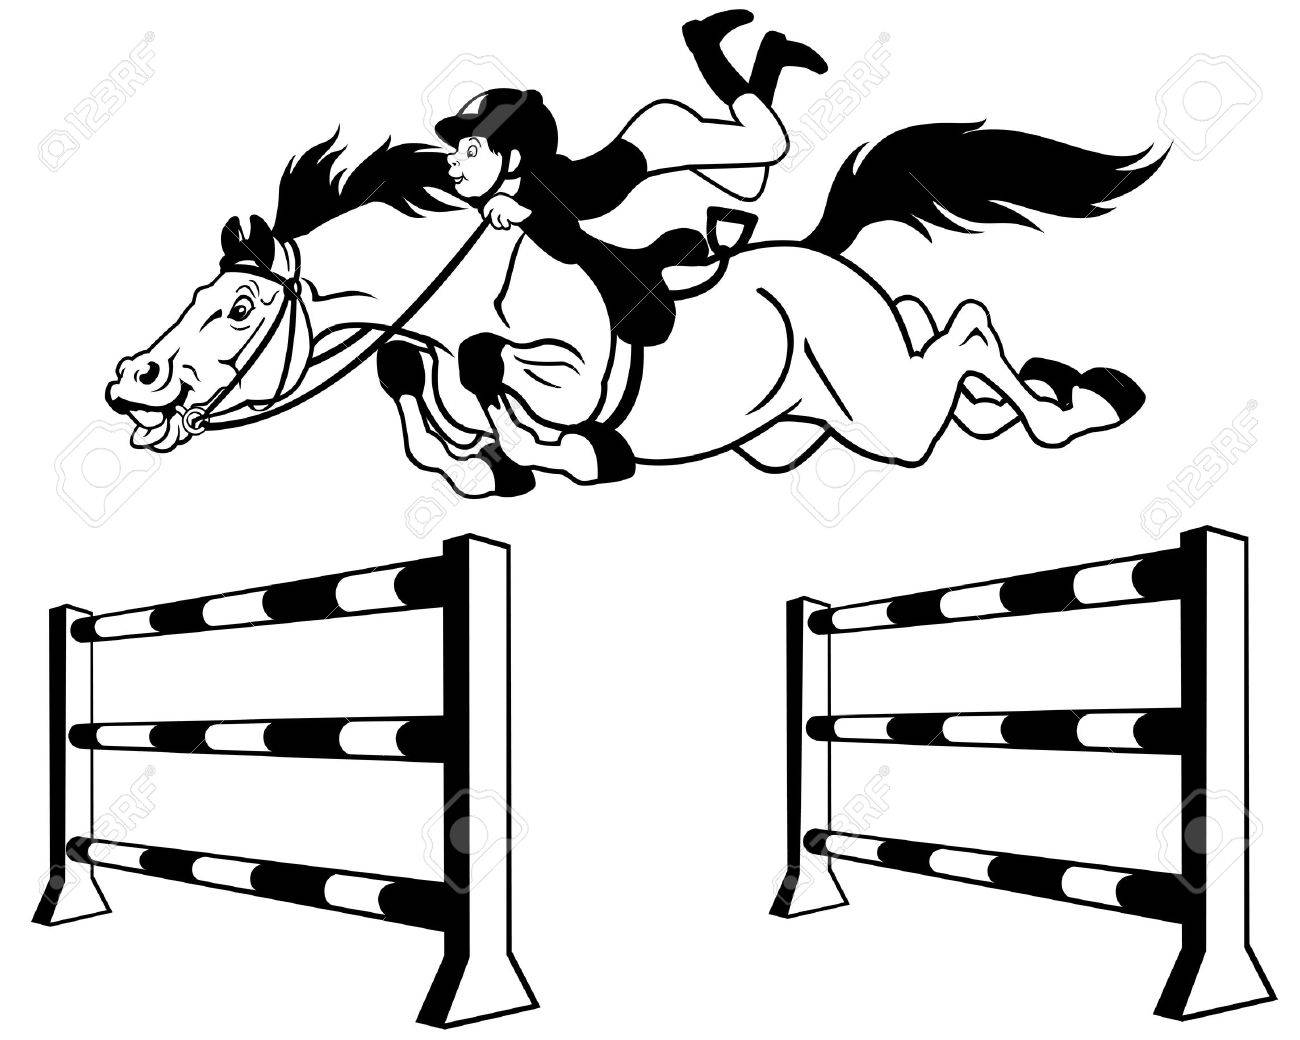 Vector Kid With Horse Jumping A Hurdle,equestrian Sport,black And White  Cartoon Illustration